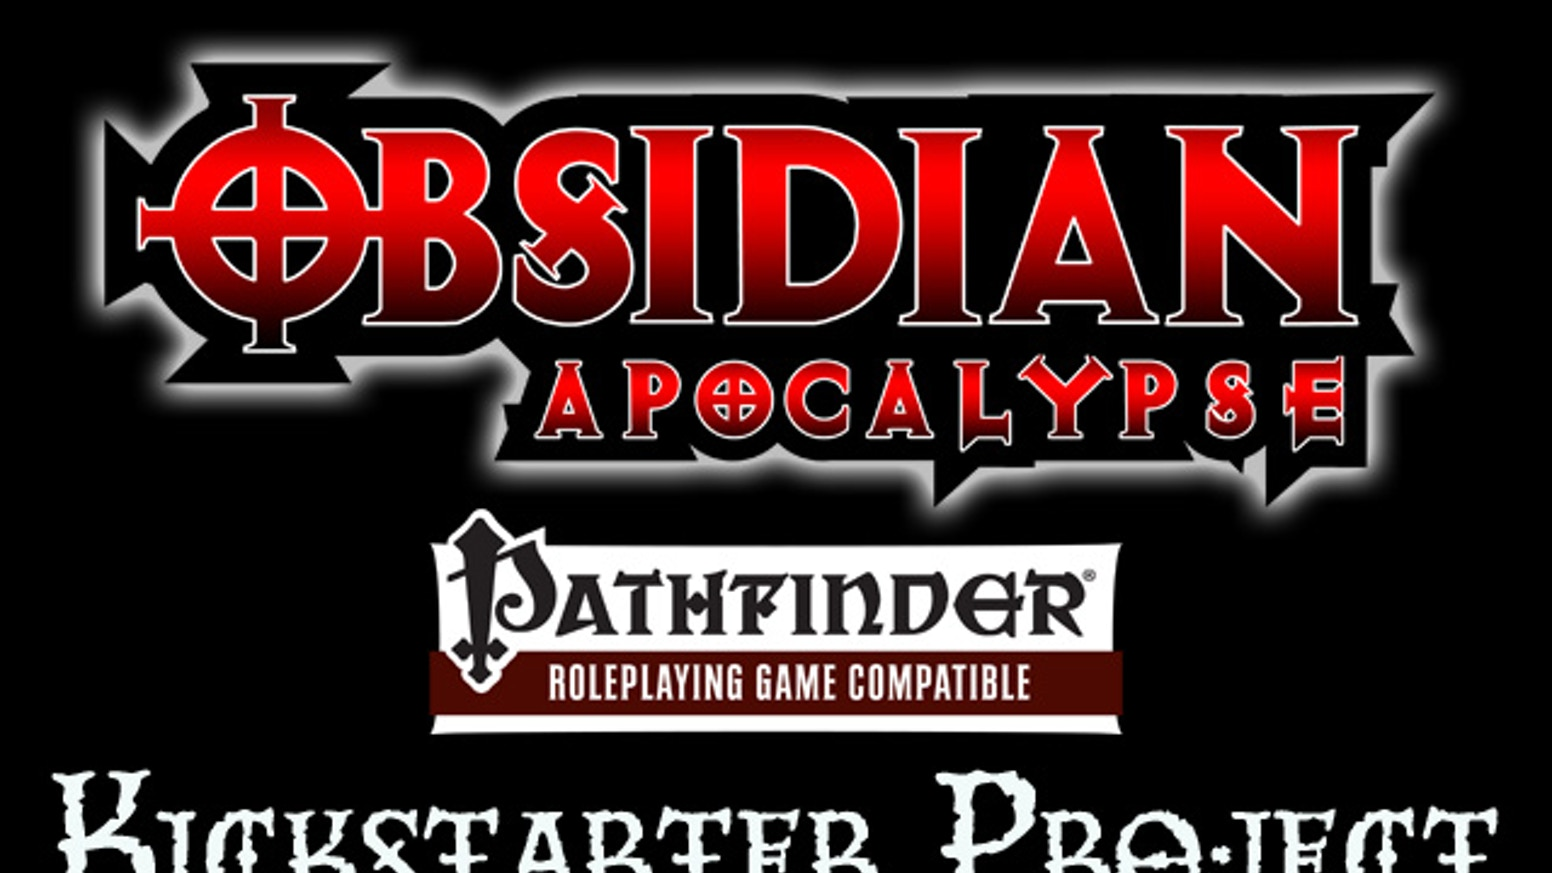 The Obsidian Apocalypse is a post-apocalyptic survival horror table top RPG template campaign setting for the Pathfinder RPG.